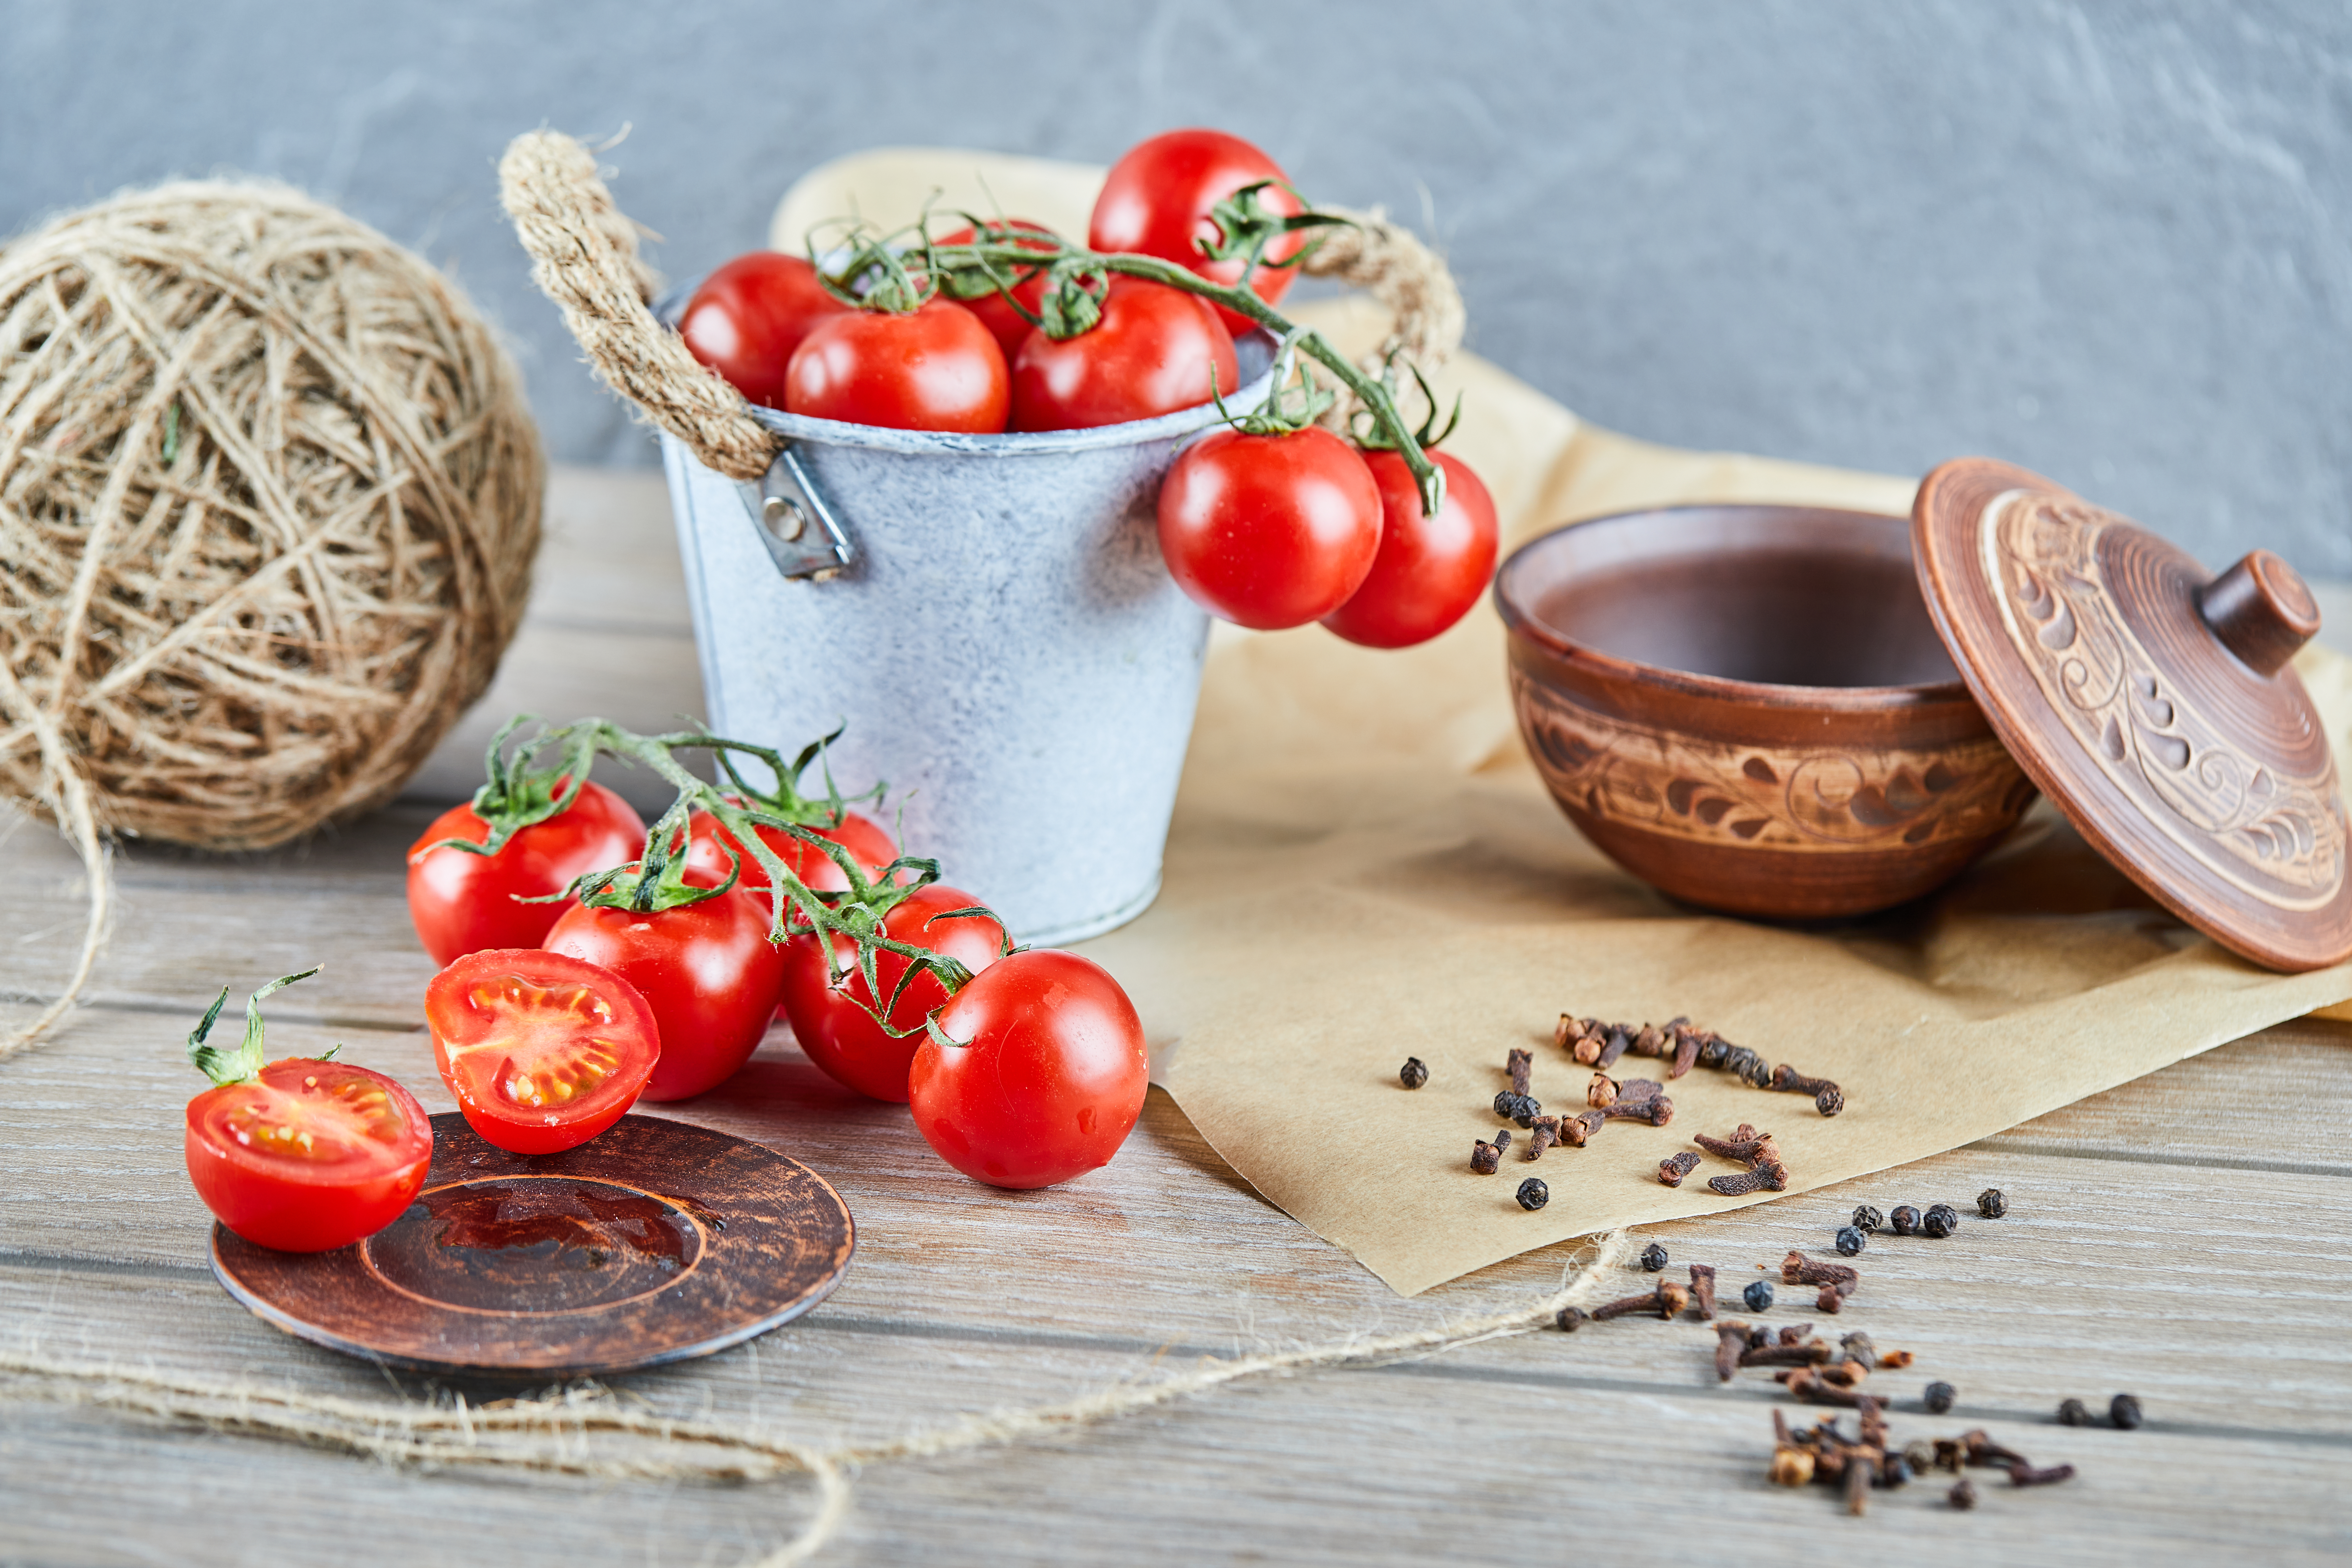 Bucket of tomatoes and half cut tomato on wooden table